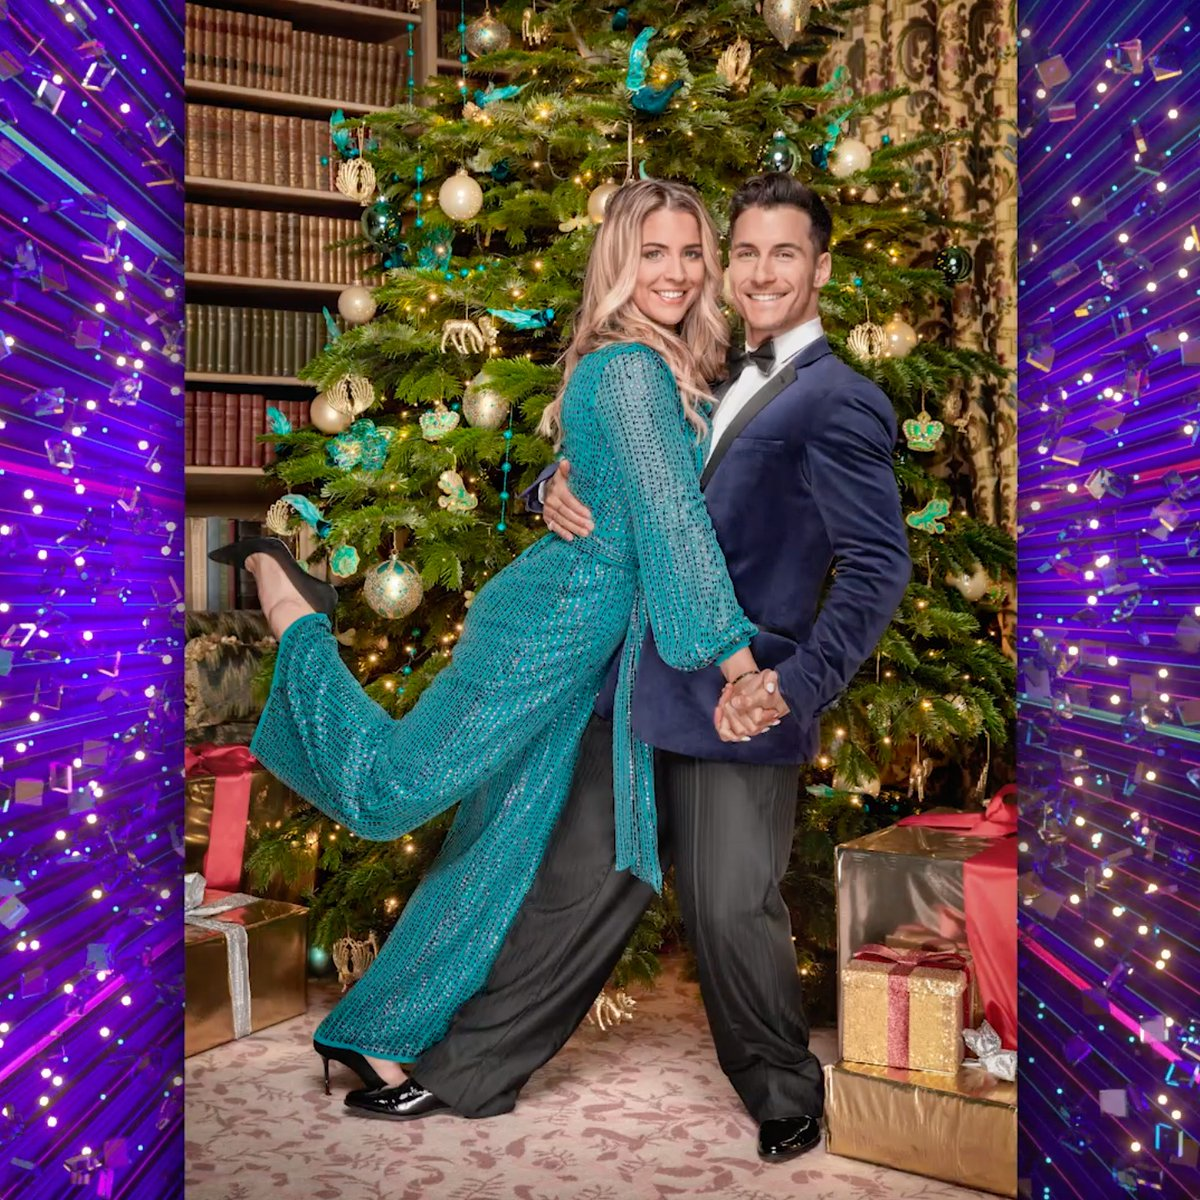 FIRST LOOK: Dont our #Strictly Christmas couples look fab-yule-lous? 🎄